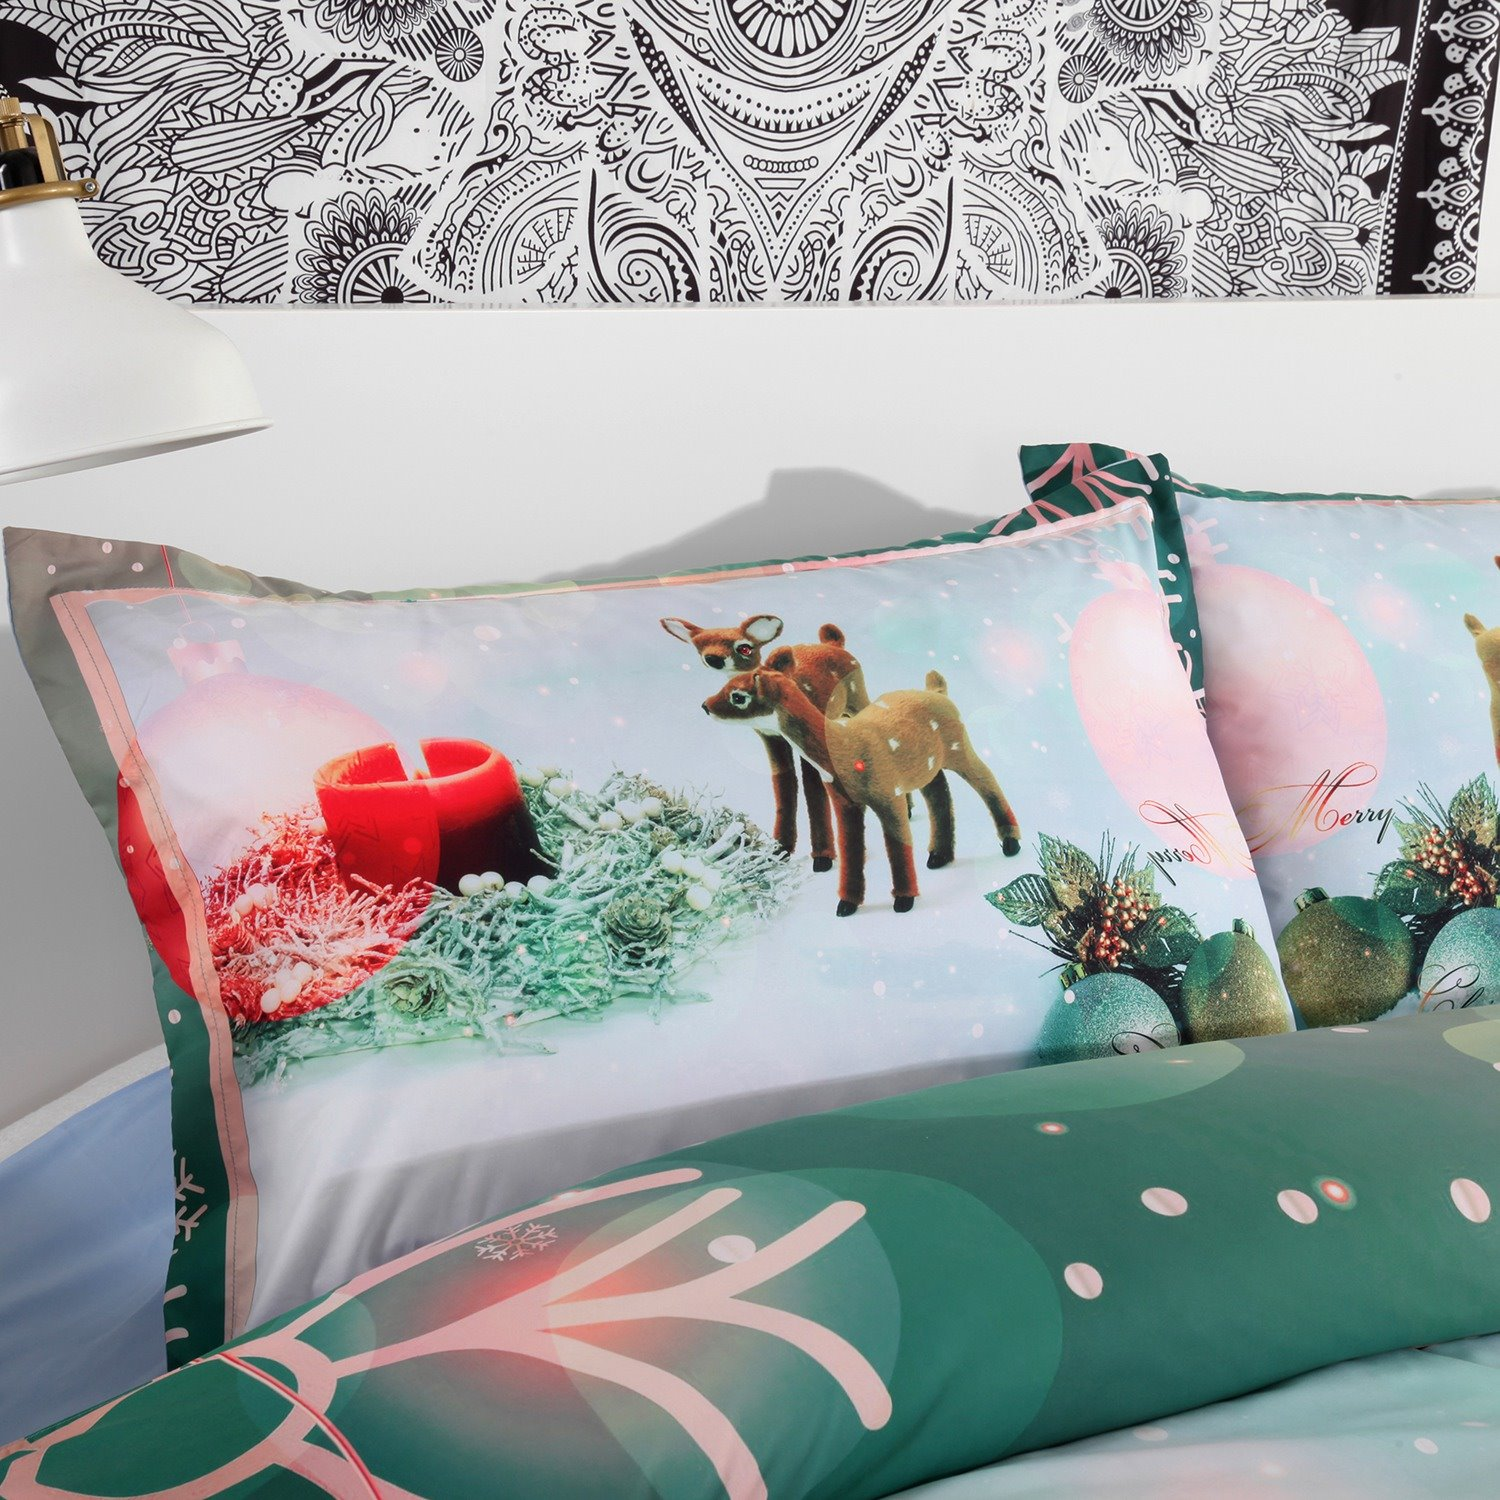 Onlwe 3D Christmas Ornaments and Snowflake Printed 4-Piece Green Bedding Sets/Duvet Covers